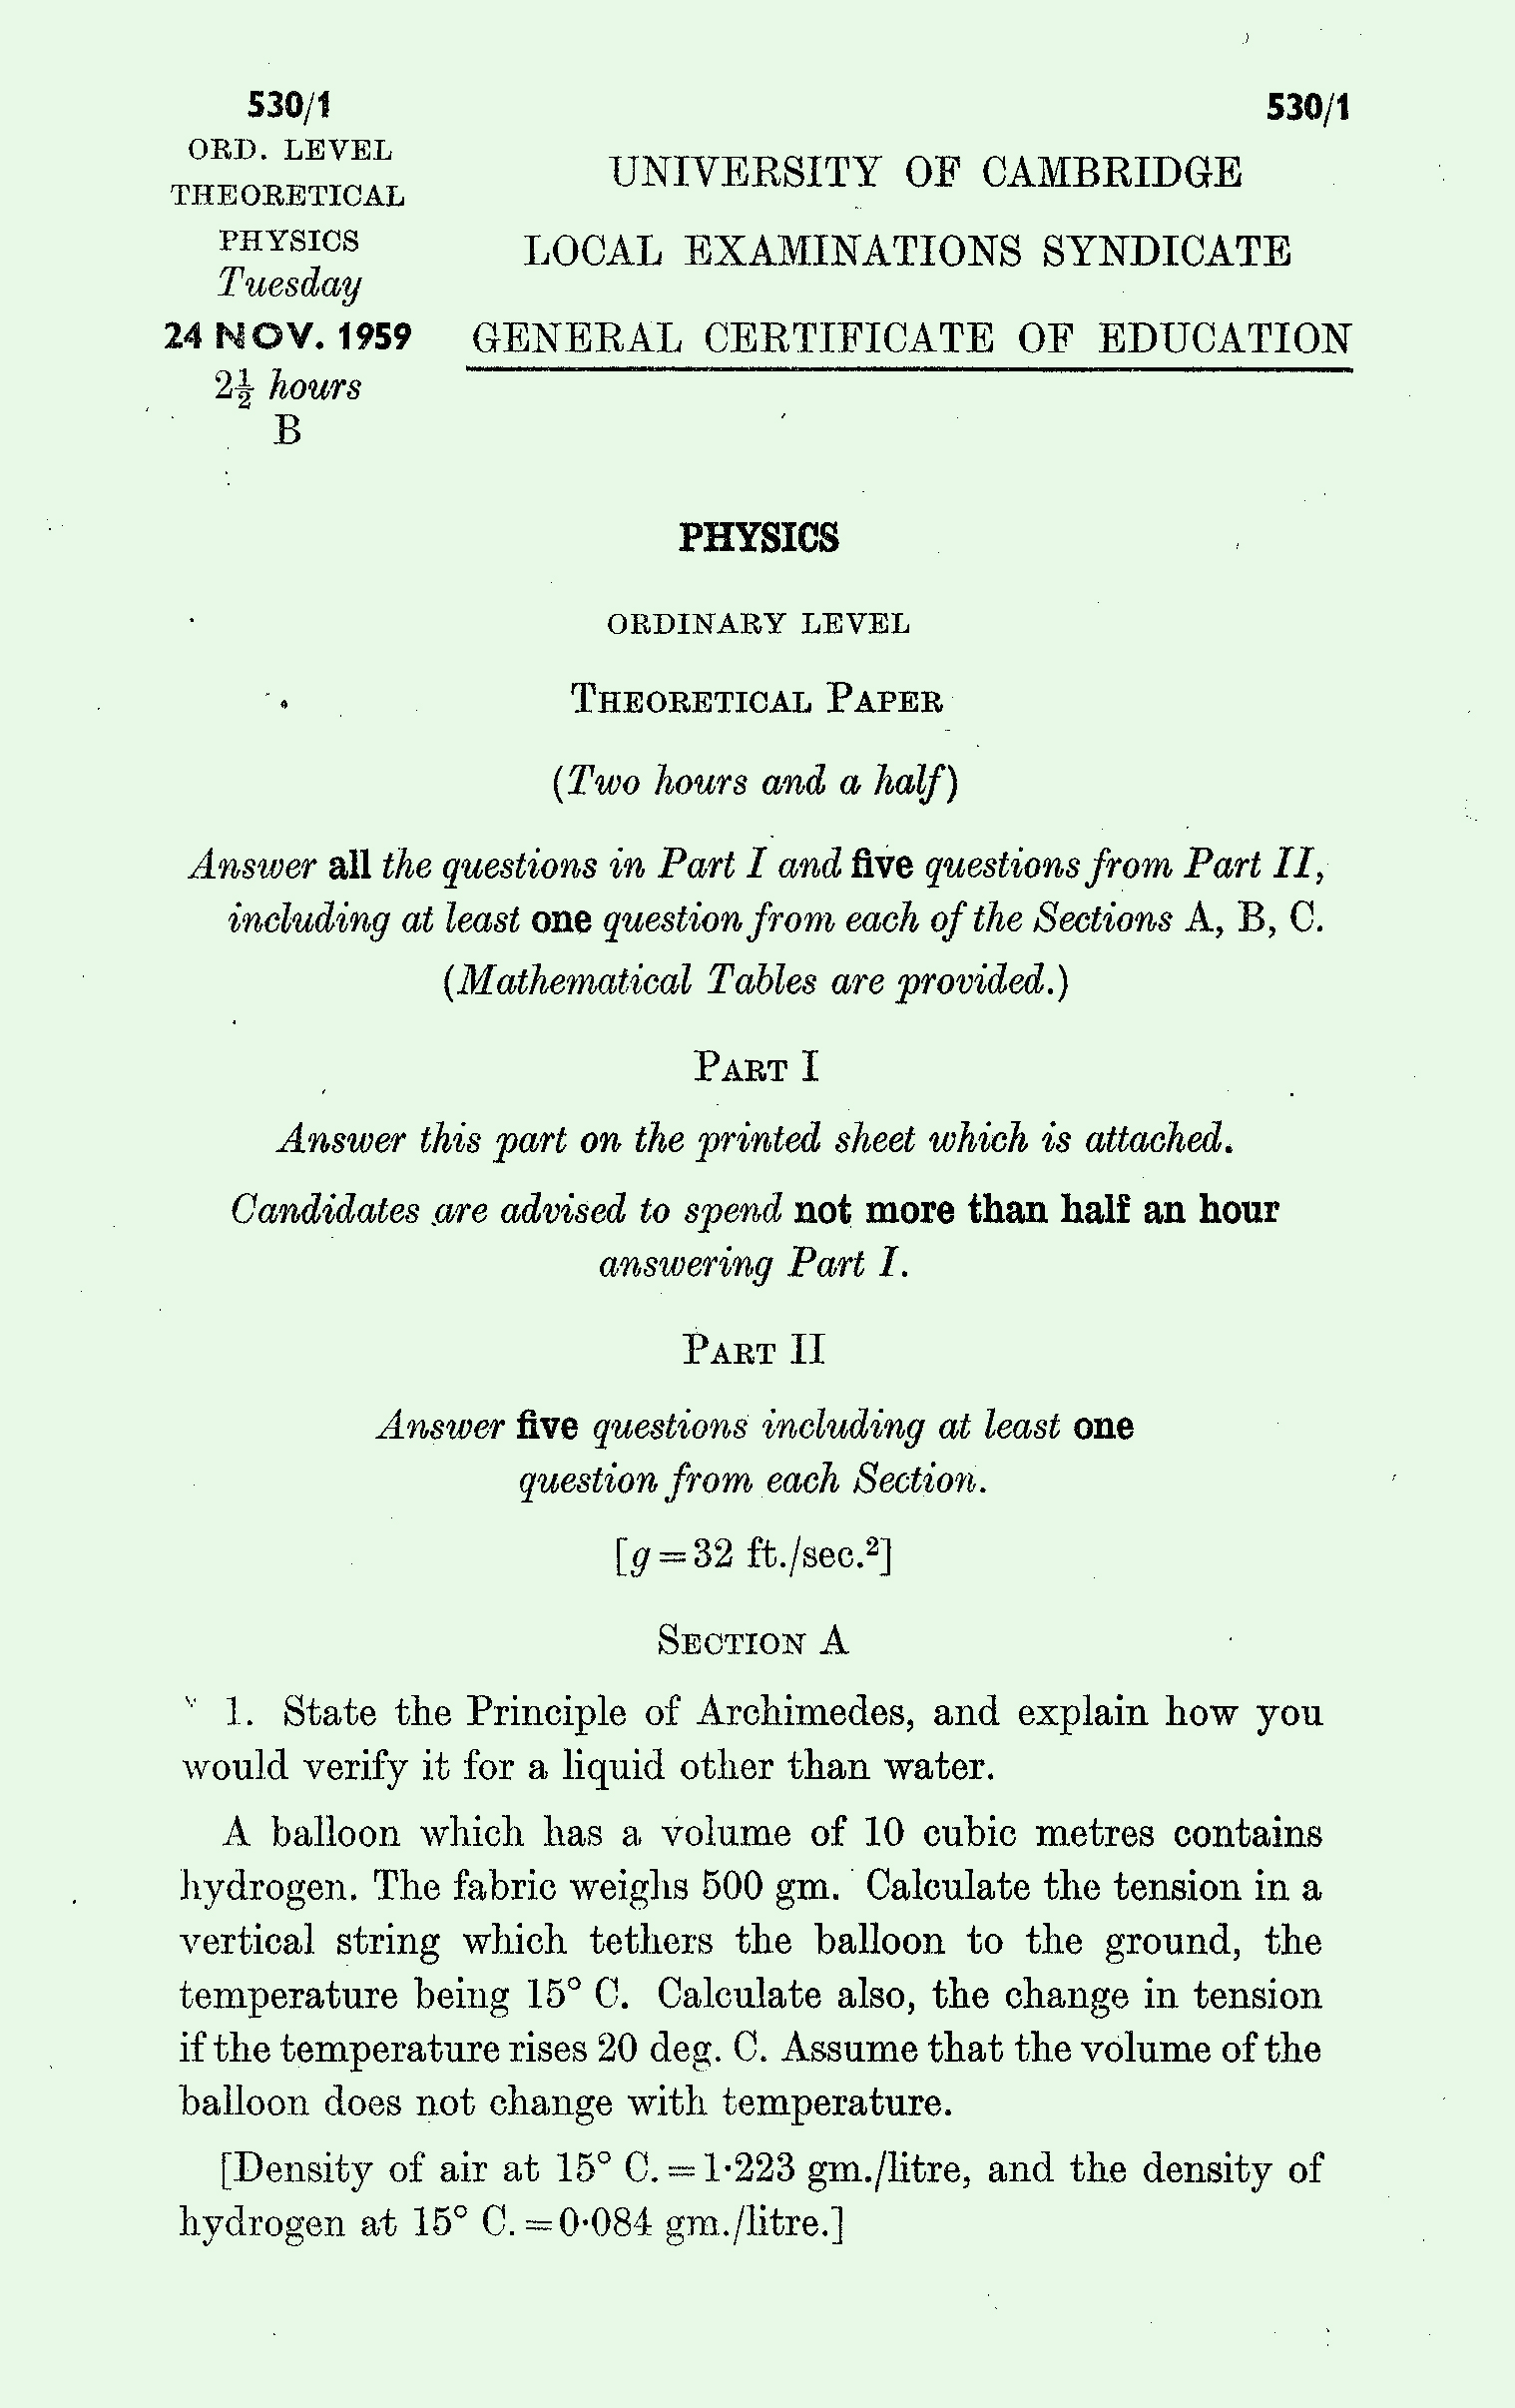 1959 Physics exam page 1